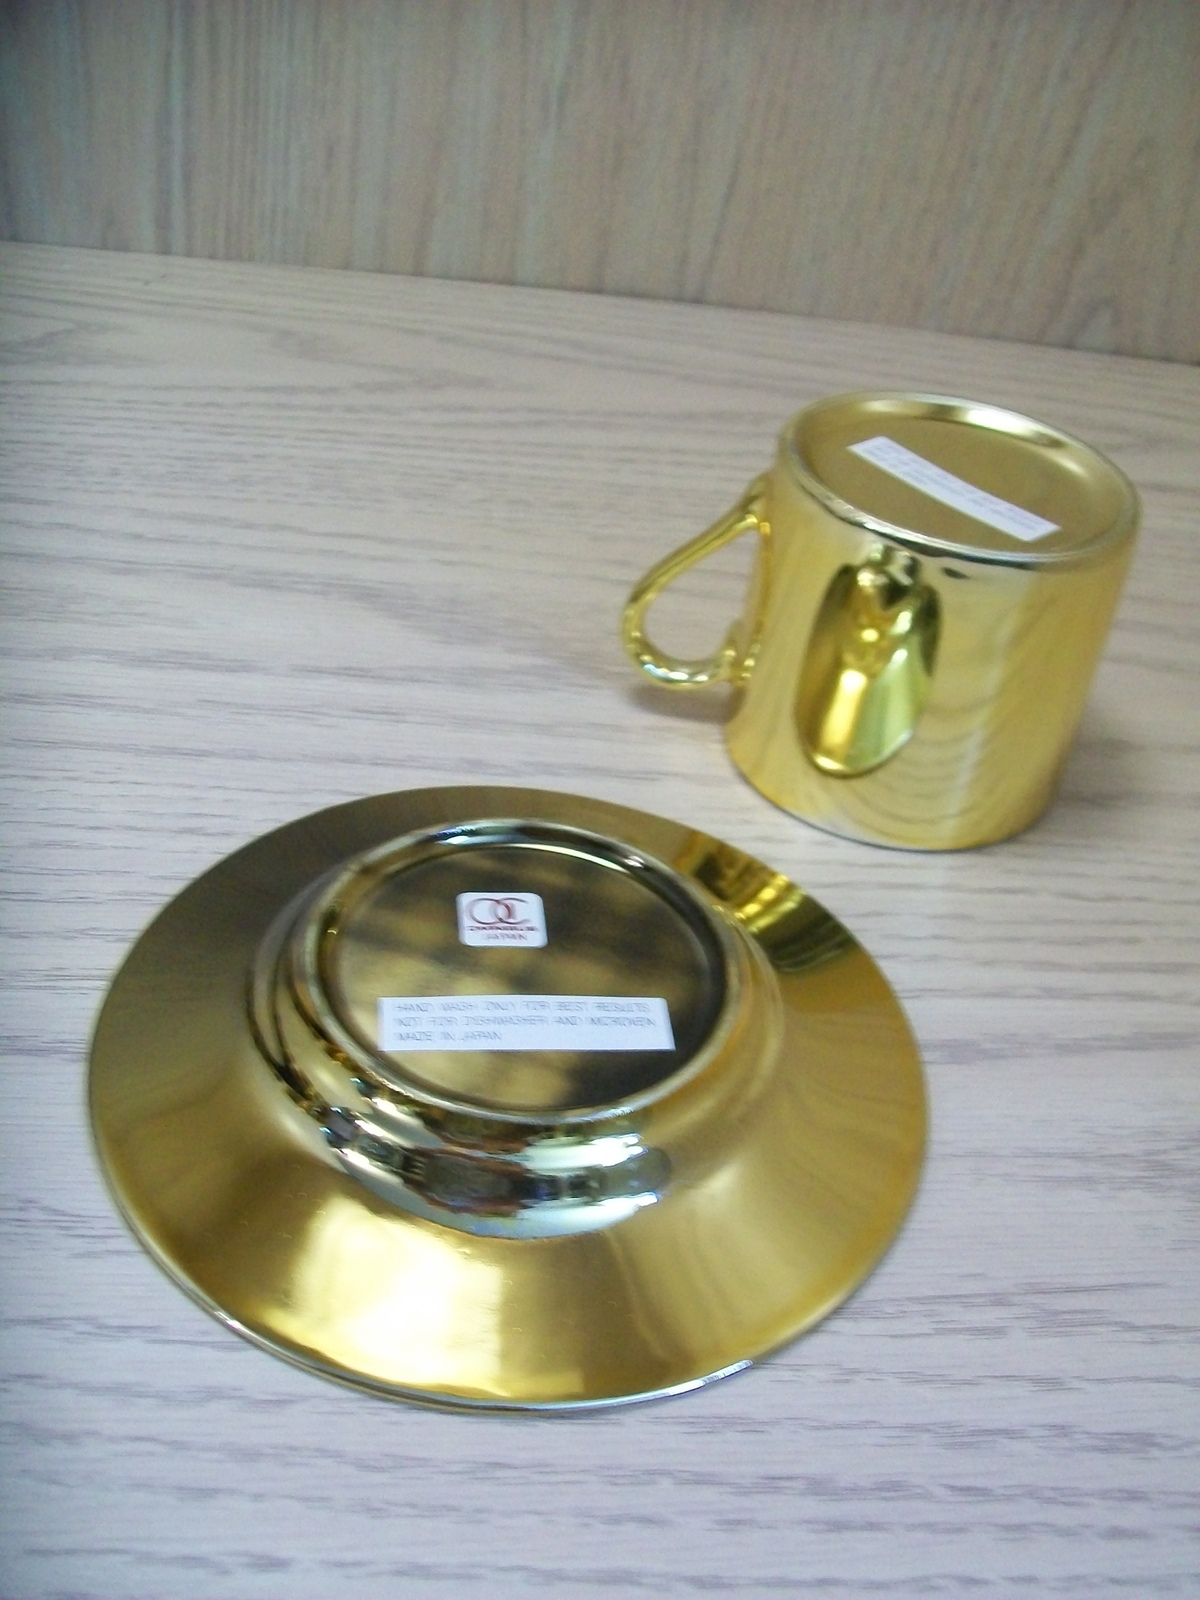 Ceramic Qty 8 Cups & Saucers With Plastic Tray Gold Color Omnibus Mfg Japan